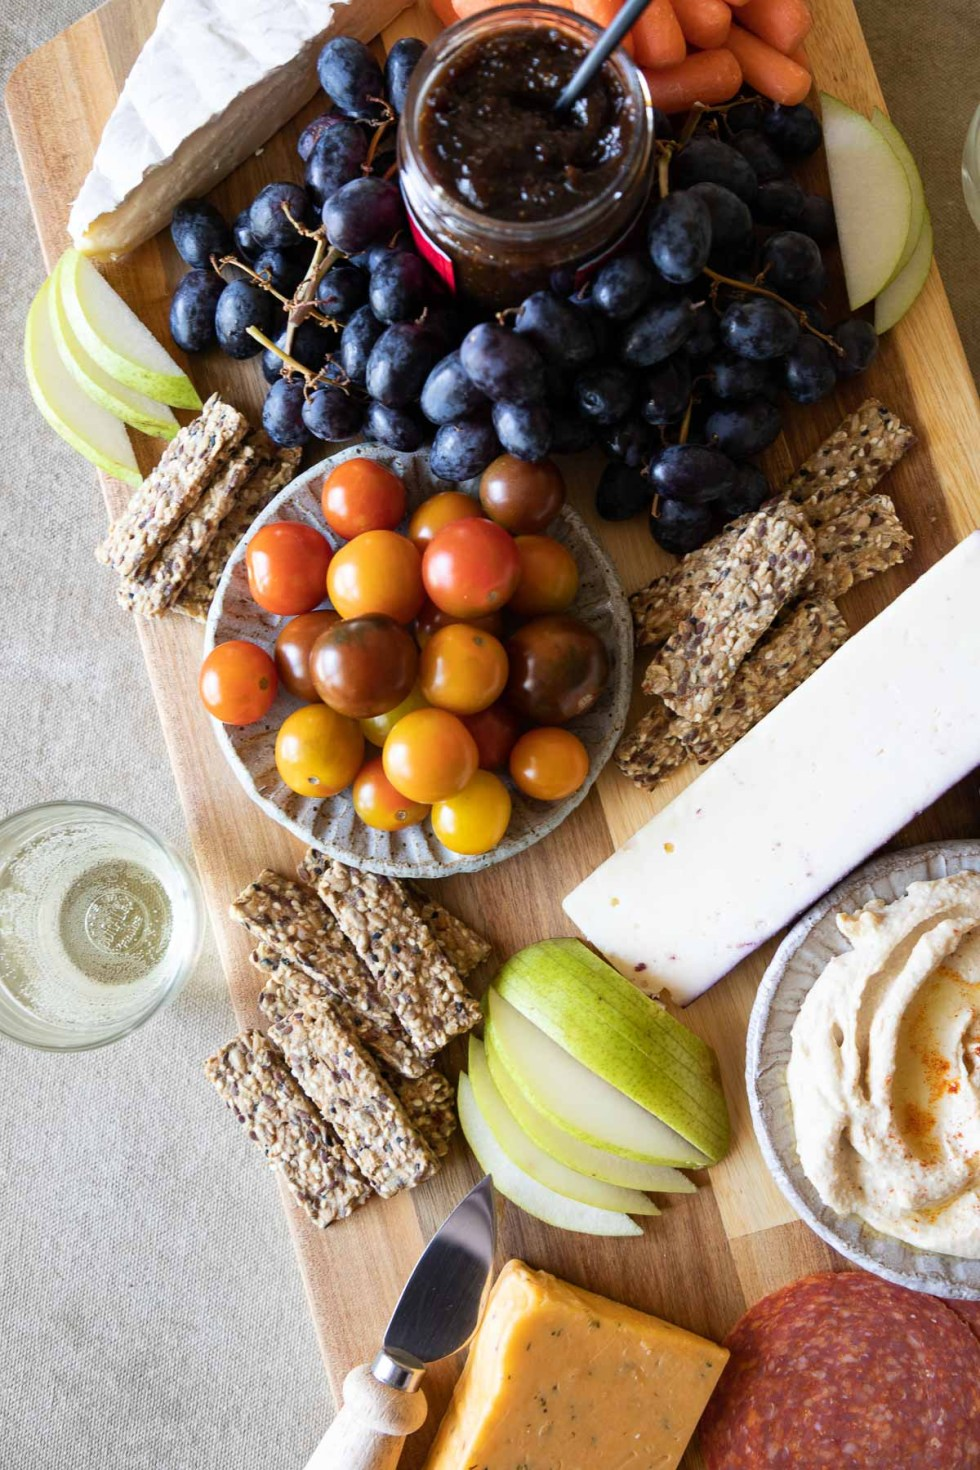 Trader Joe's Charcuterie Appetizer Board - Cheese, Tomatoes, Grapes + Crackers